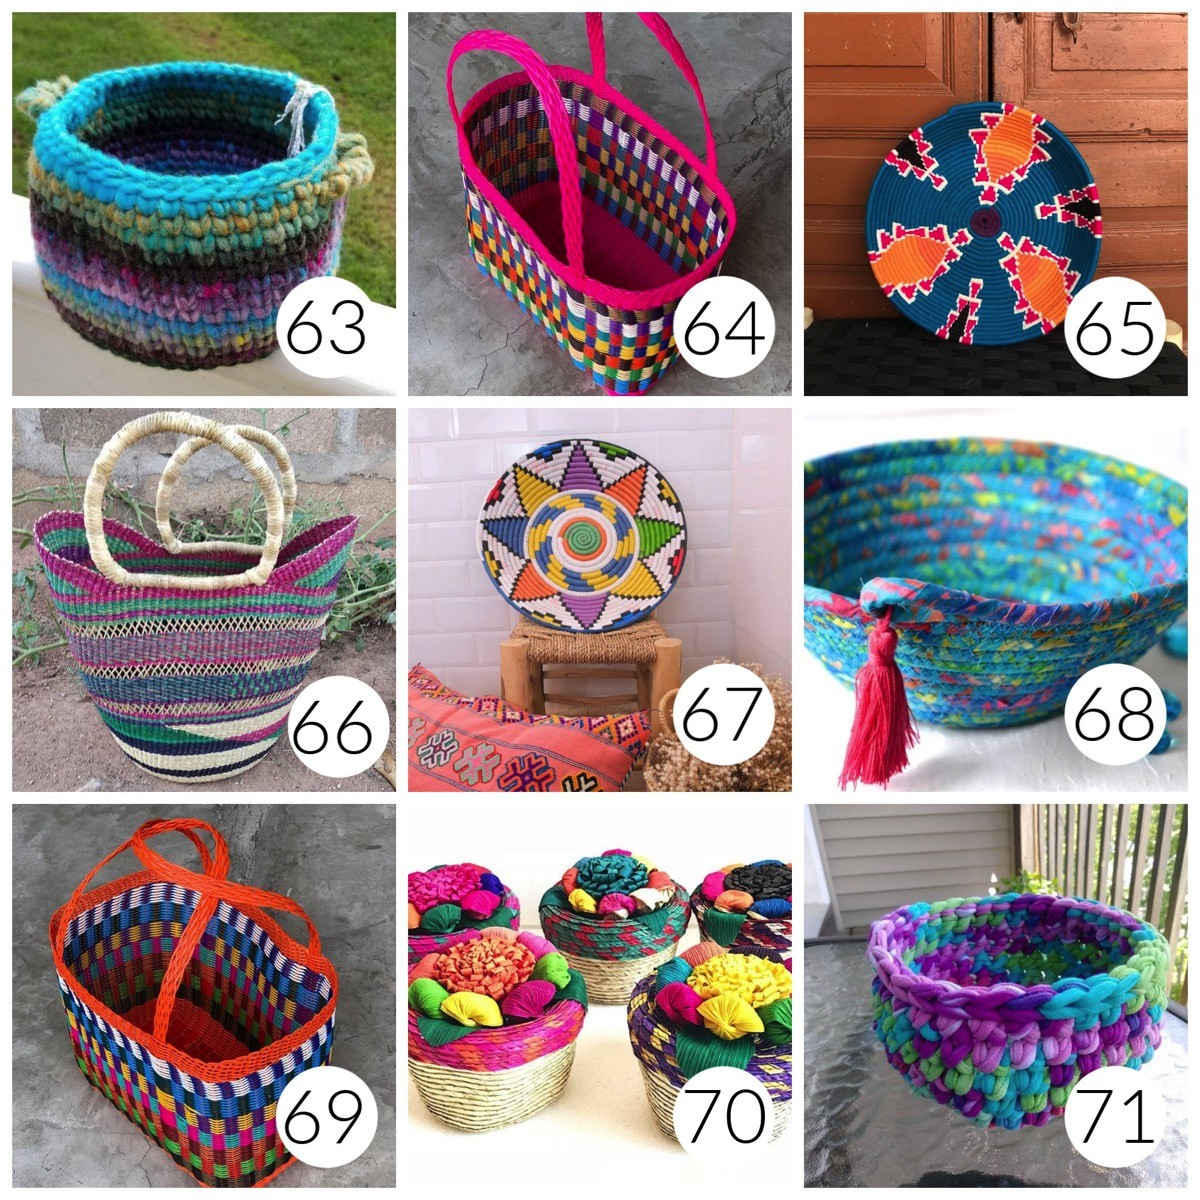 Colorful woven baskets for house